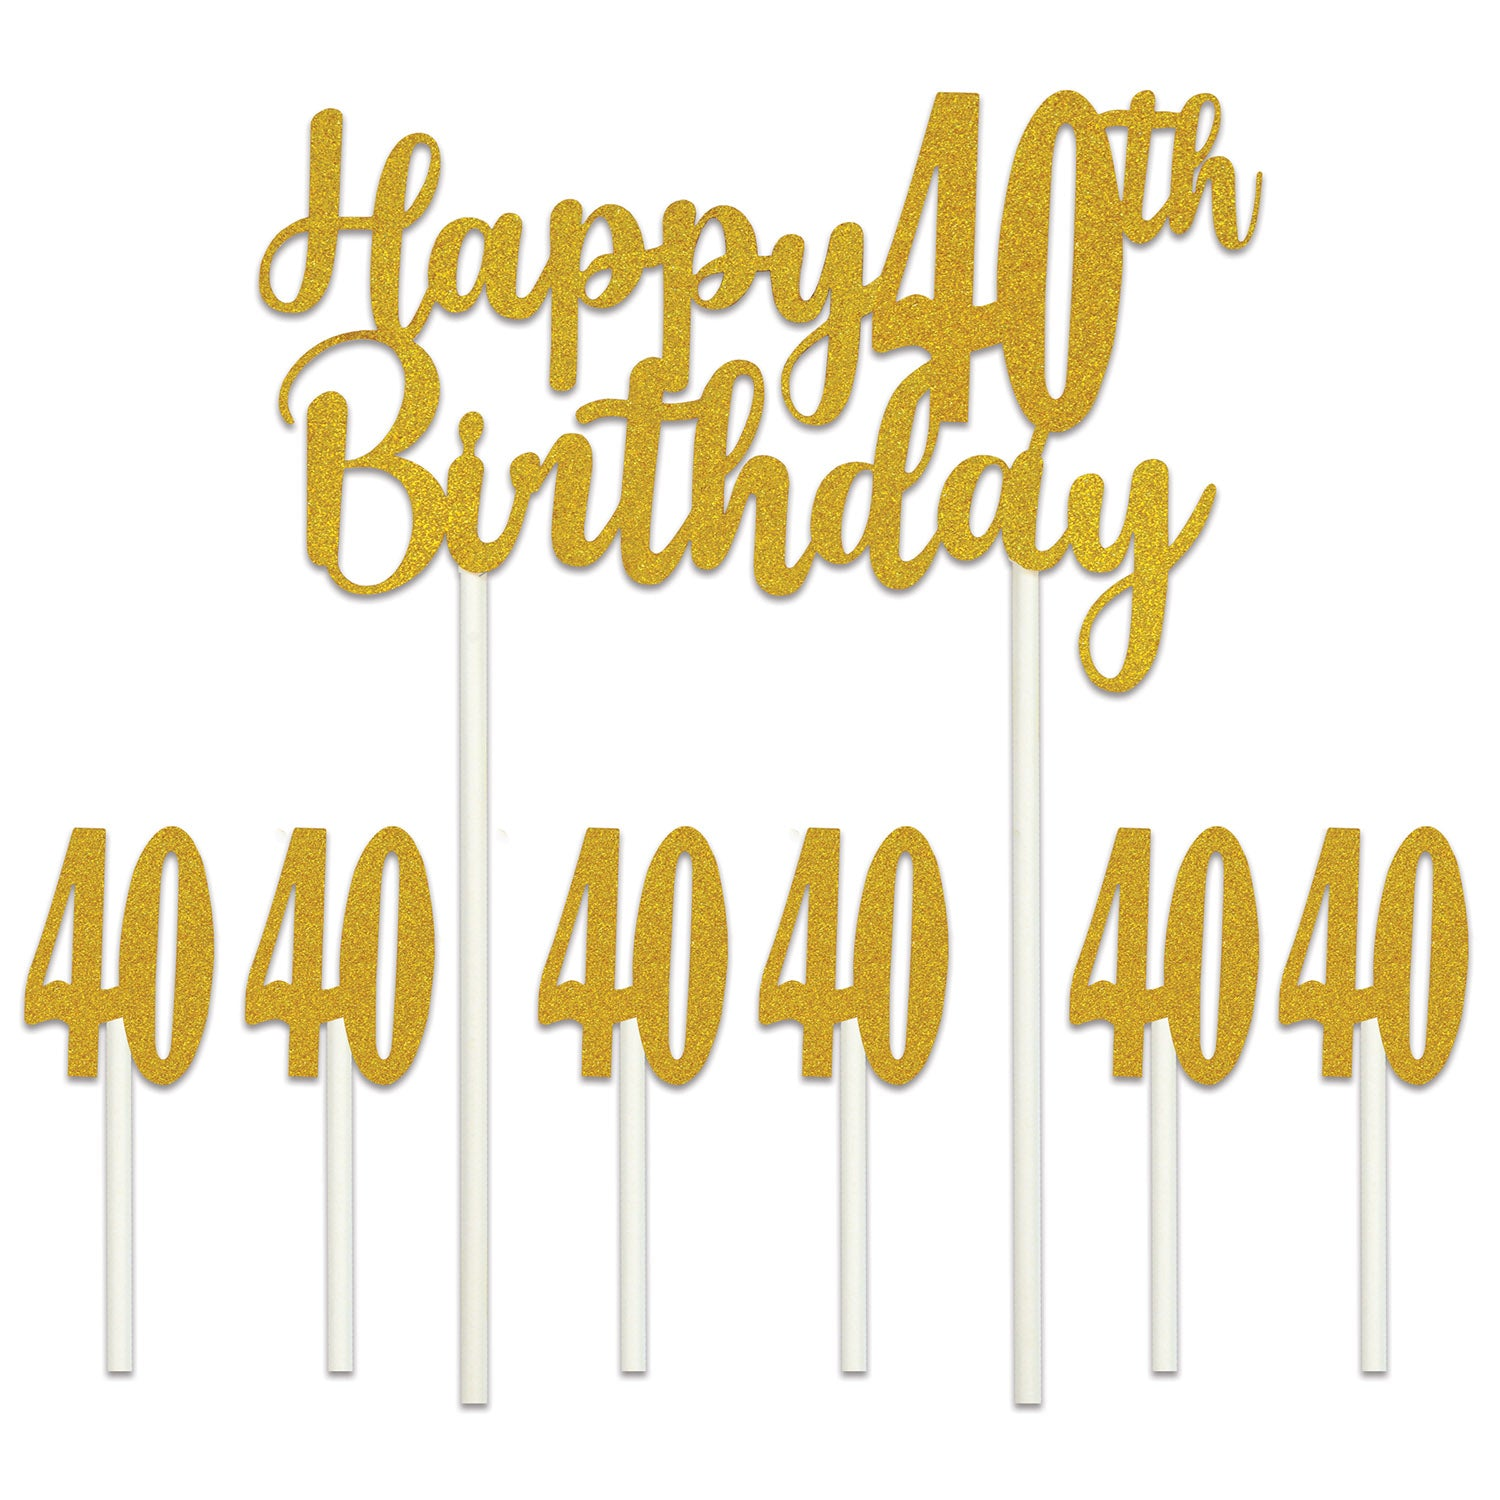 Happy 40th Birthday Cake Topper by Beistle - 40th Birthday Party Decorations